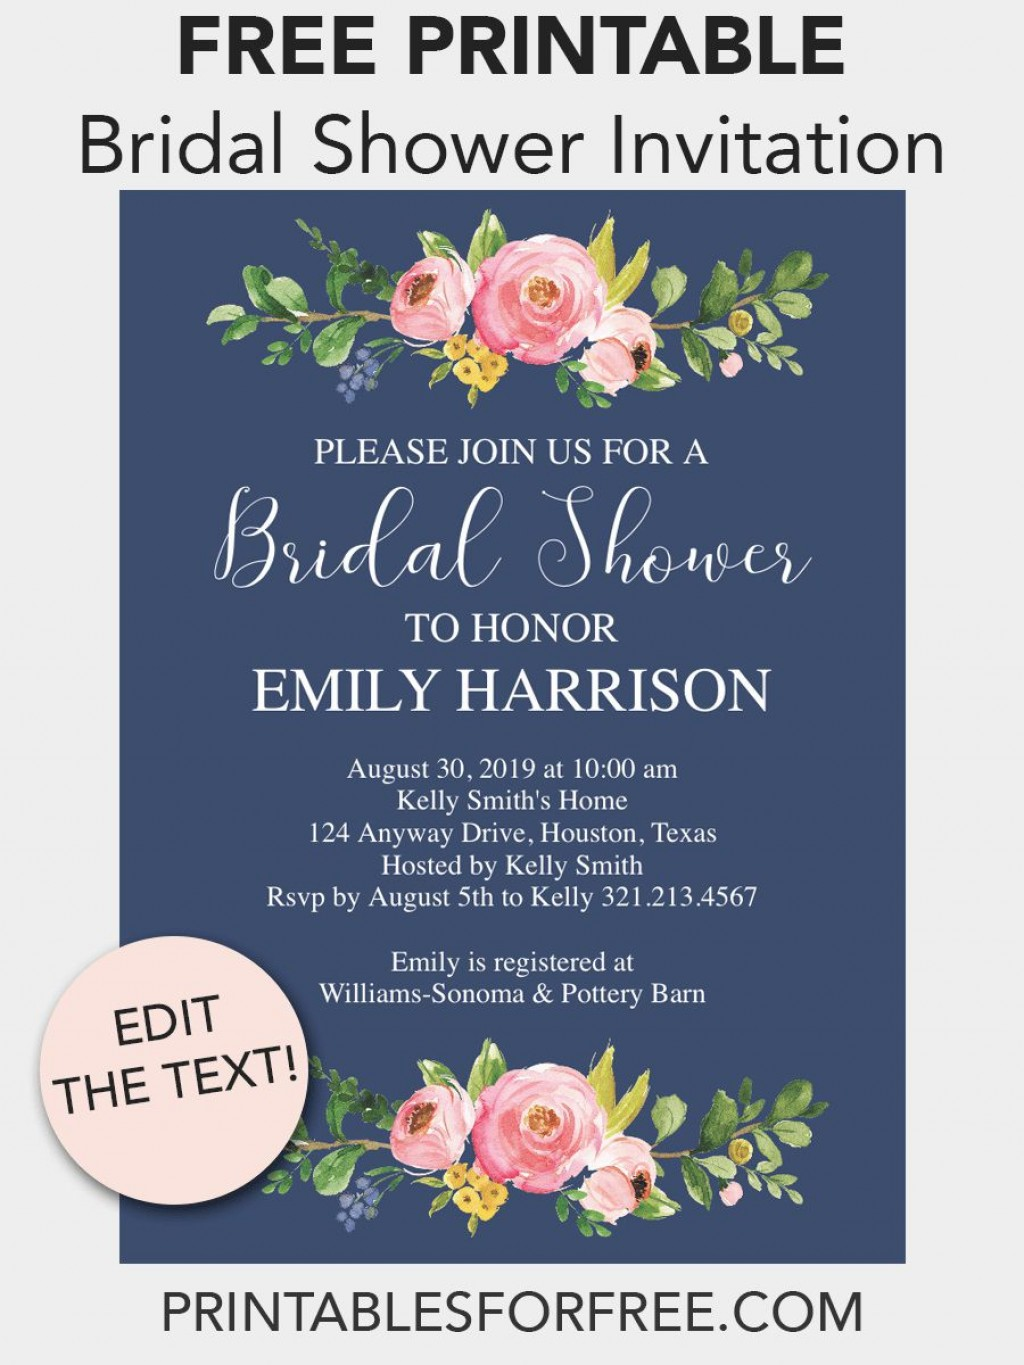 008 Staggering Free Bridal Shower Invite Template Highest Quality  Invitation For Word Wedding MicrosoftLarge